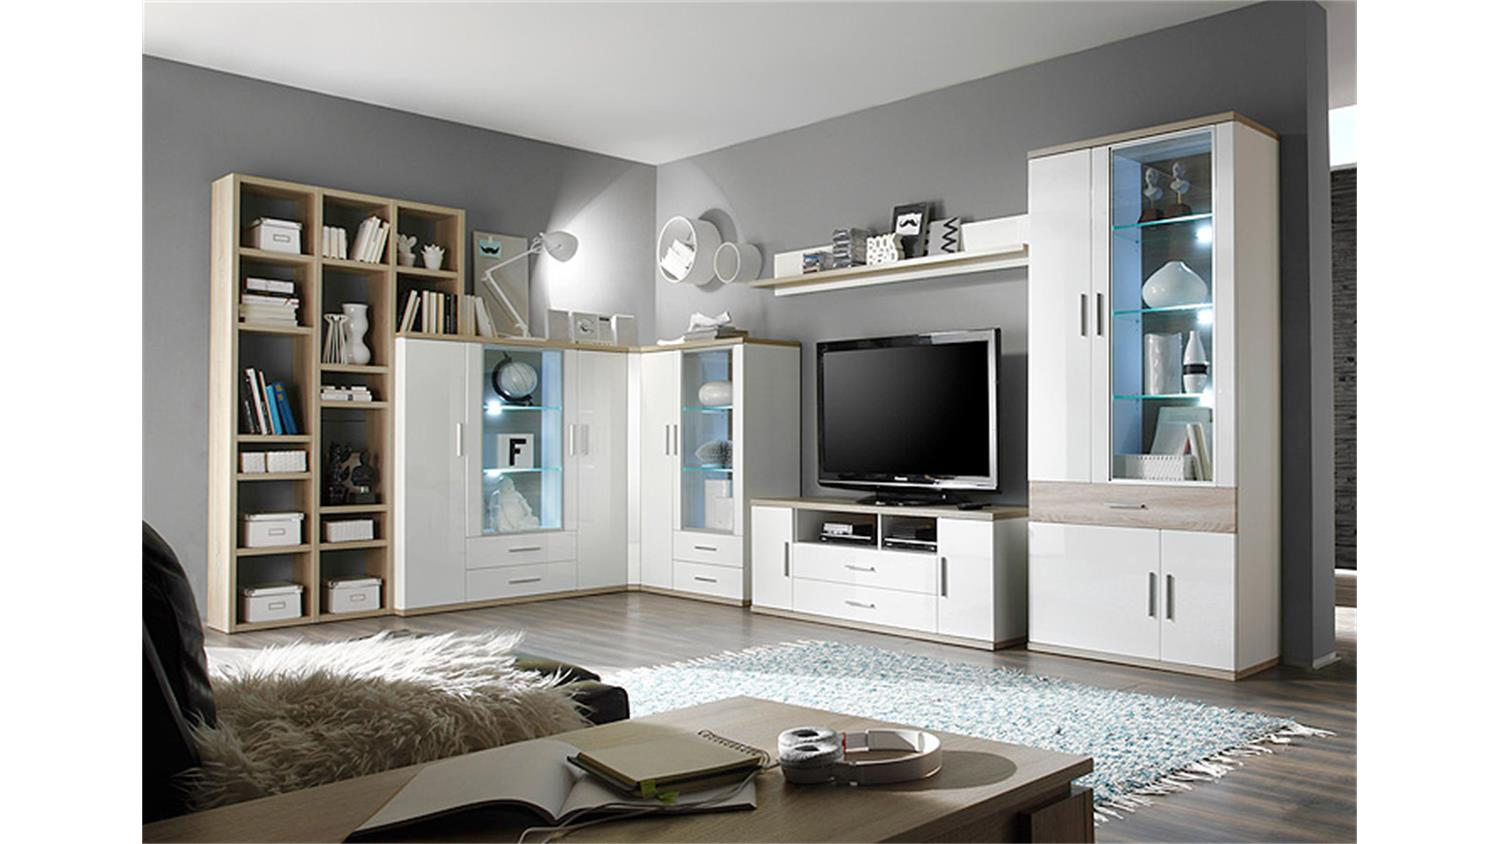 highboard 2 arena wei hochglanz eiche s gerau inkl led. Black Bedroom Furniture Sets. Home Design Ideas